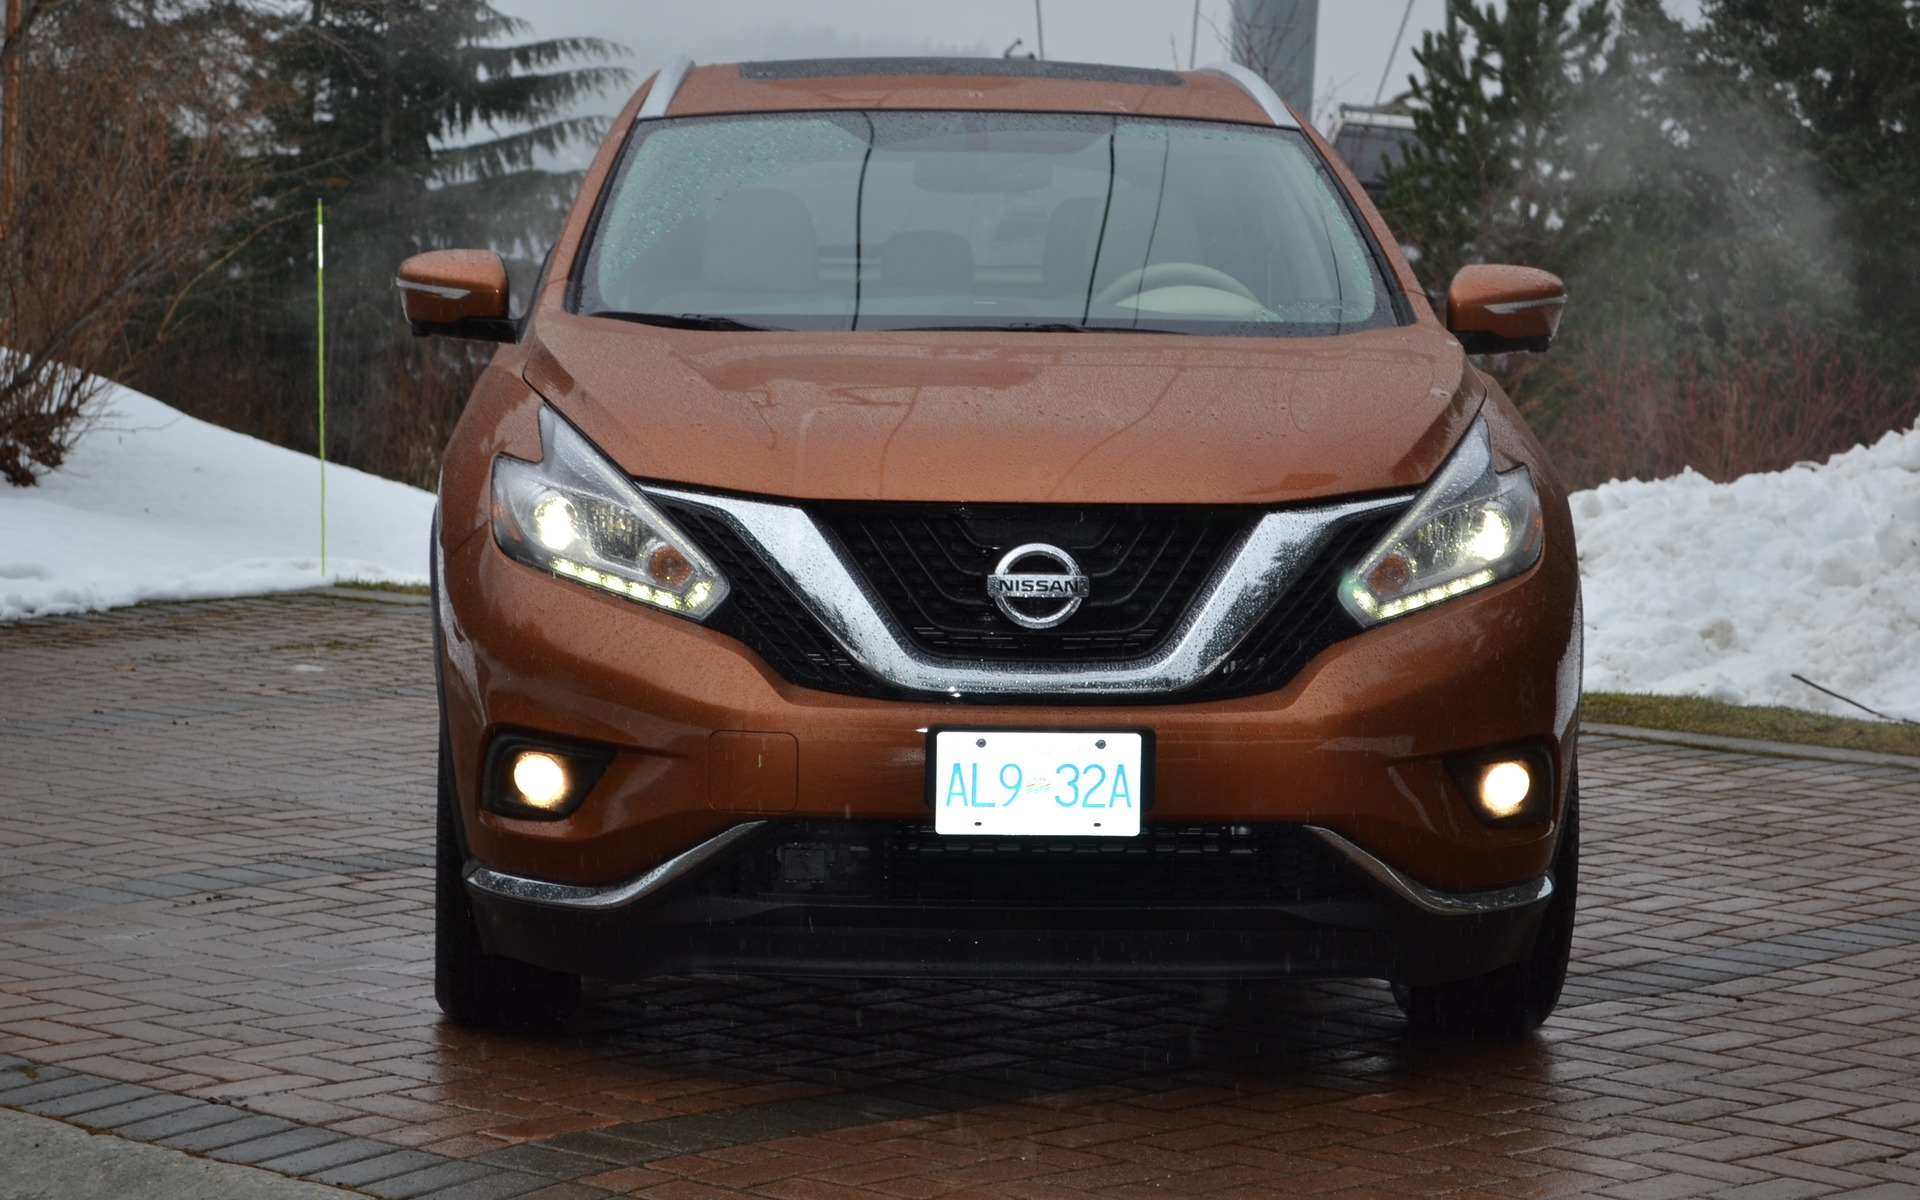 2015 Nissan Murano Specifications Pictures Prices | 2016 Car Release ...